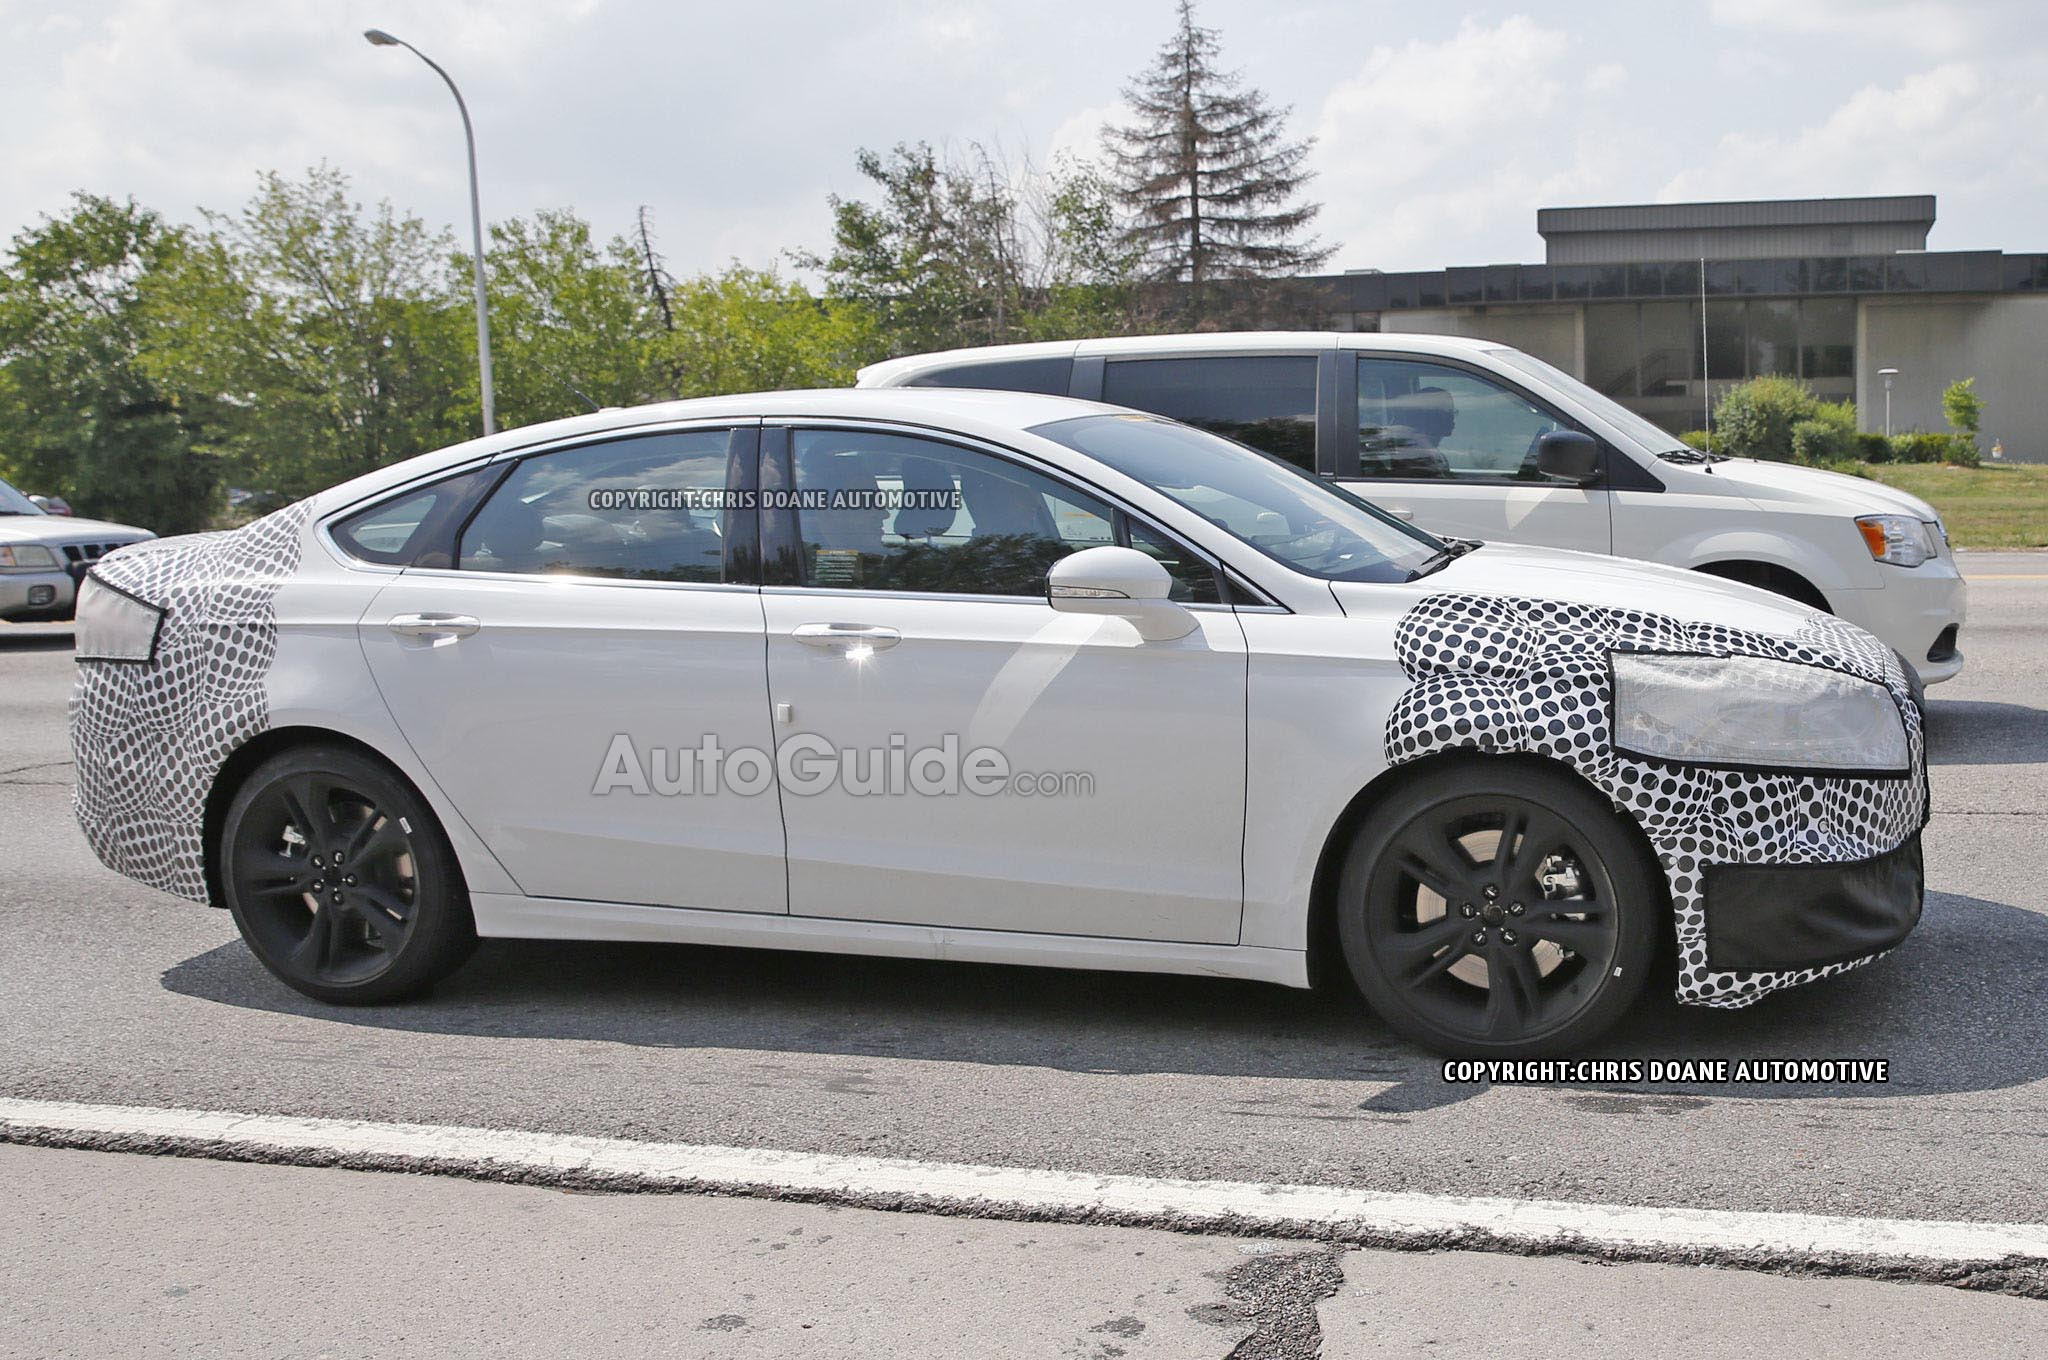 Ford Fusion ST Spied With Quad Tailpipes AutoGuide News